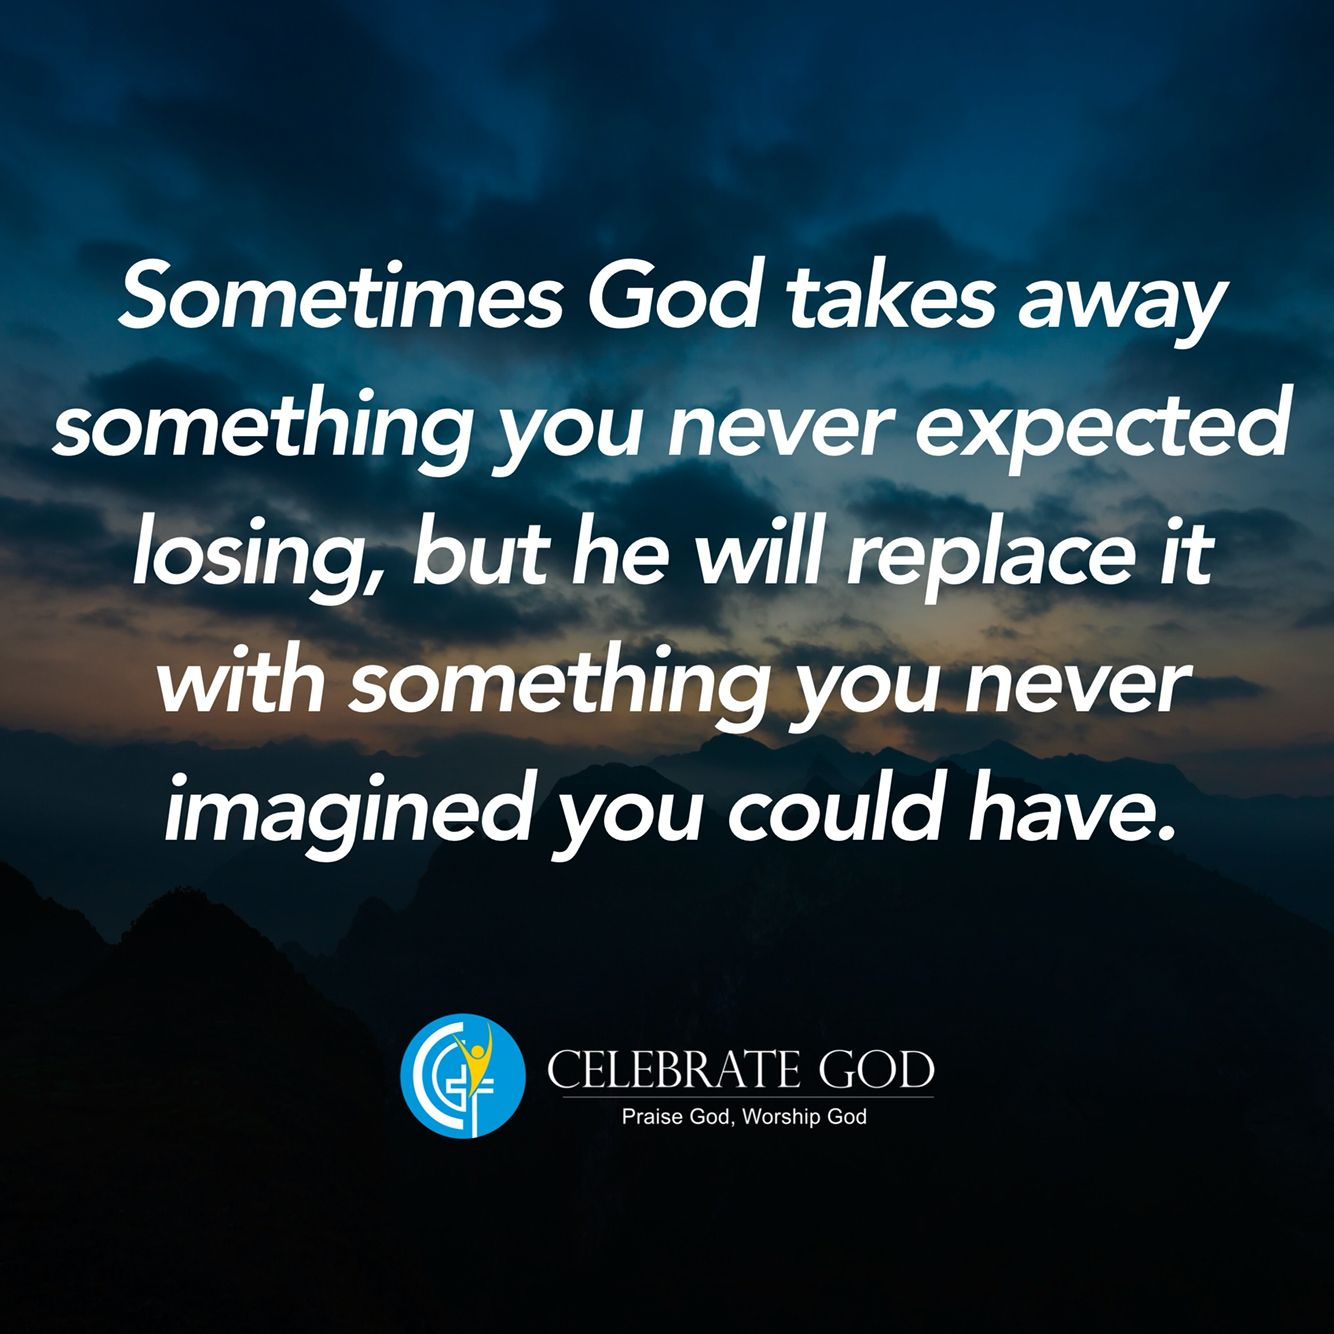 Sometimes God takes away something you never expected losing, but he will replace it with something you never imagined you could have.